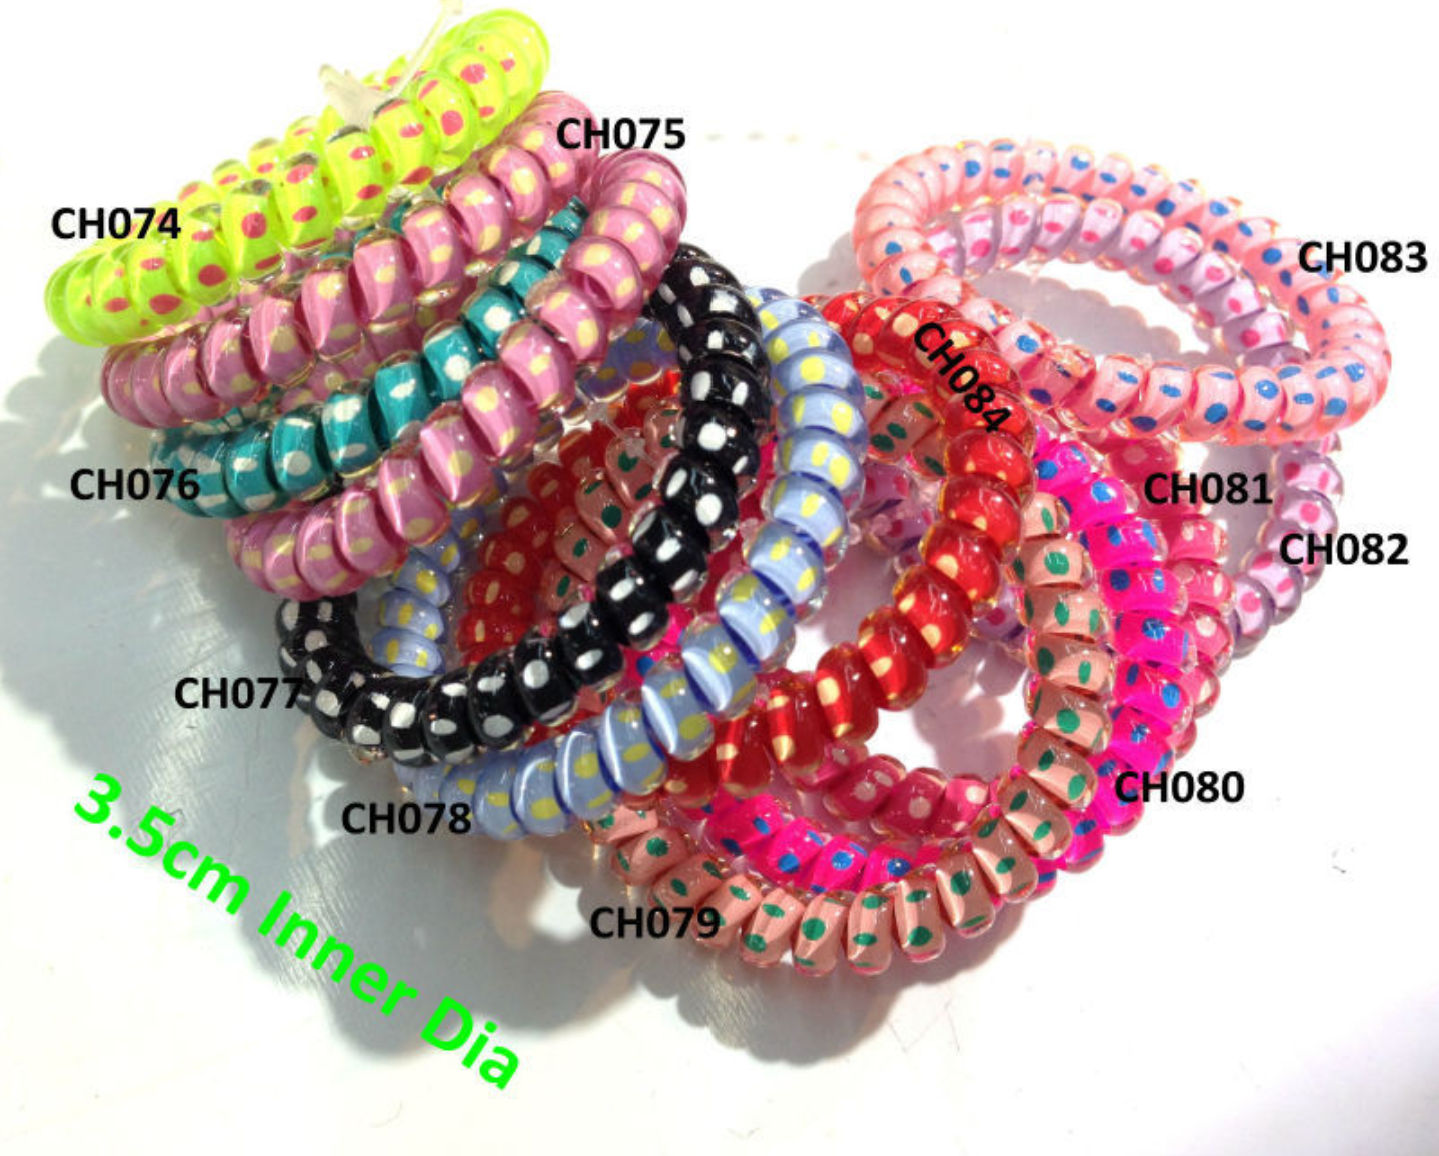 Hair Bands Telephone Cable Kinderhaargummi Hair Accessories, Spiral Rubber